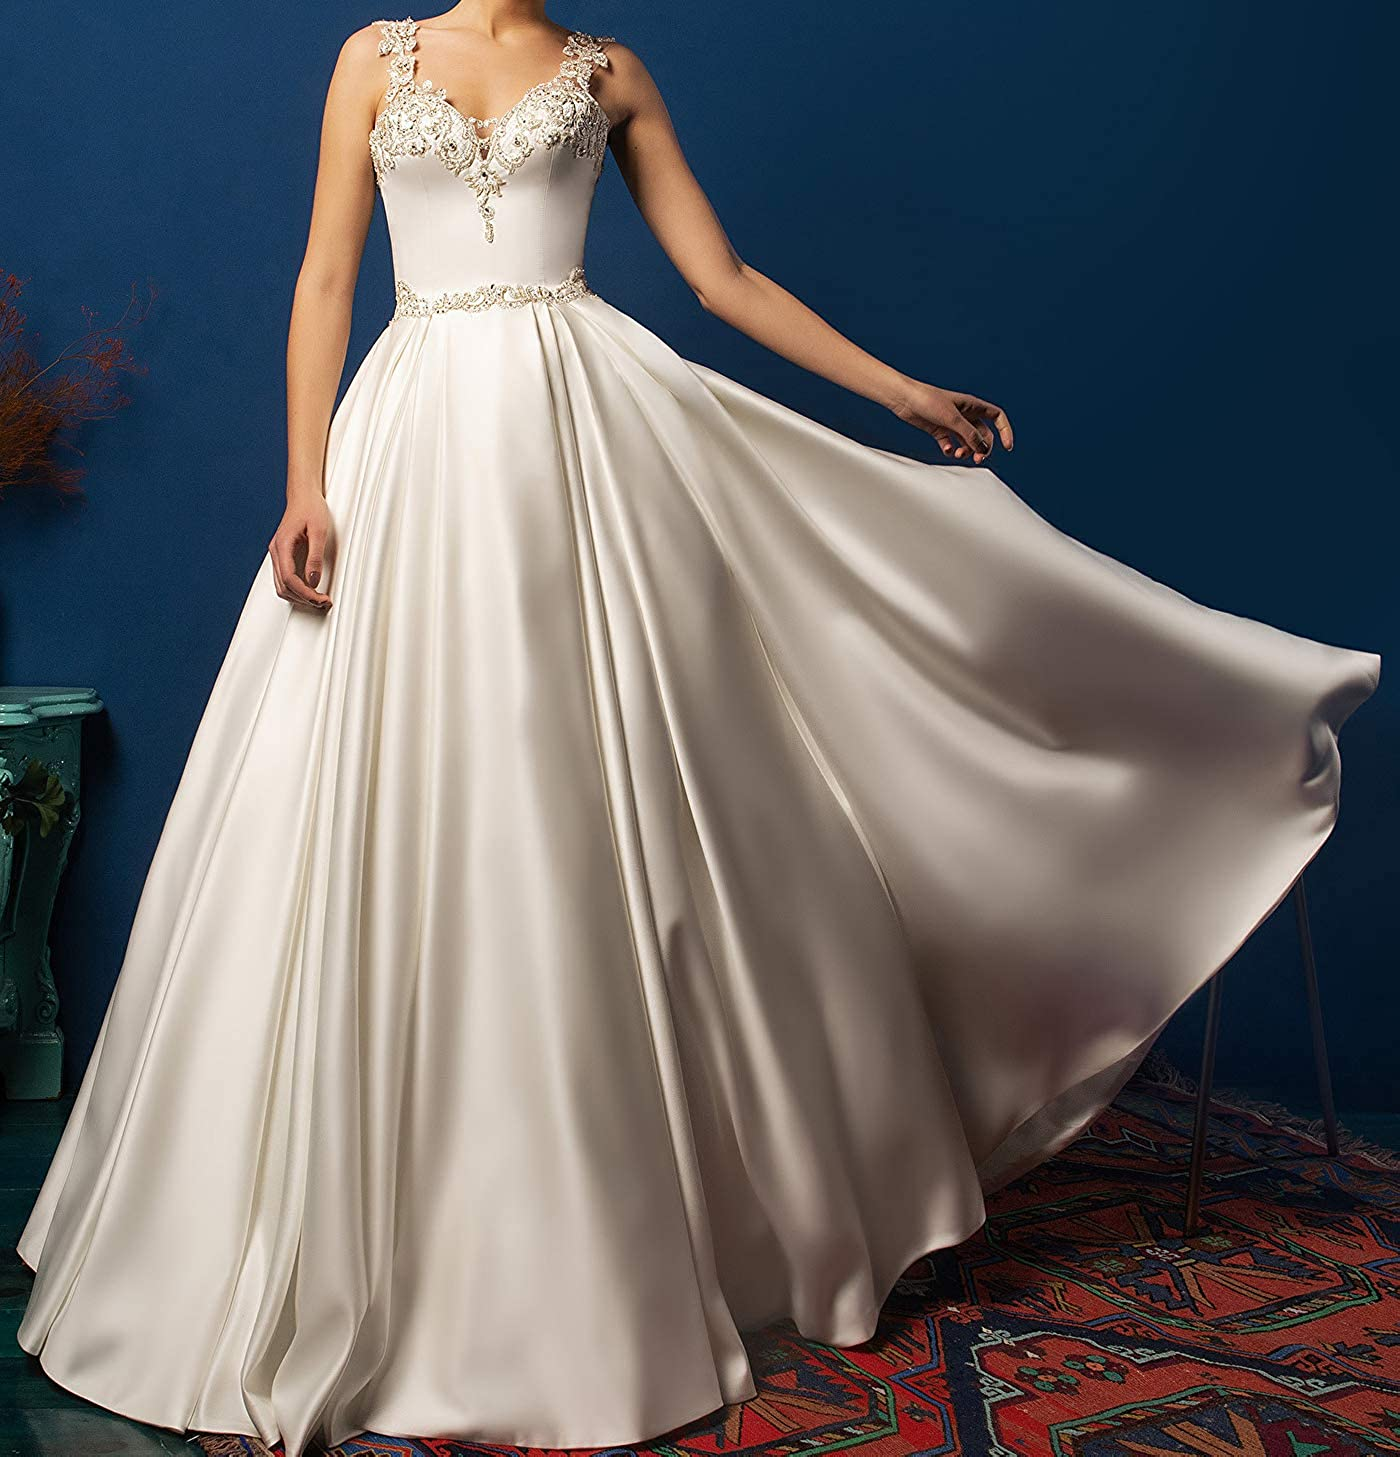 Changjie Women Crystal Bead Pearls Rhinestone Lace Appliques Ball Gown Wedding Dress Satin Bridal Gown